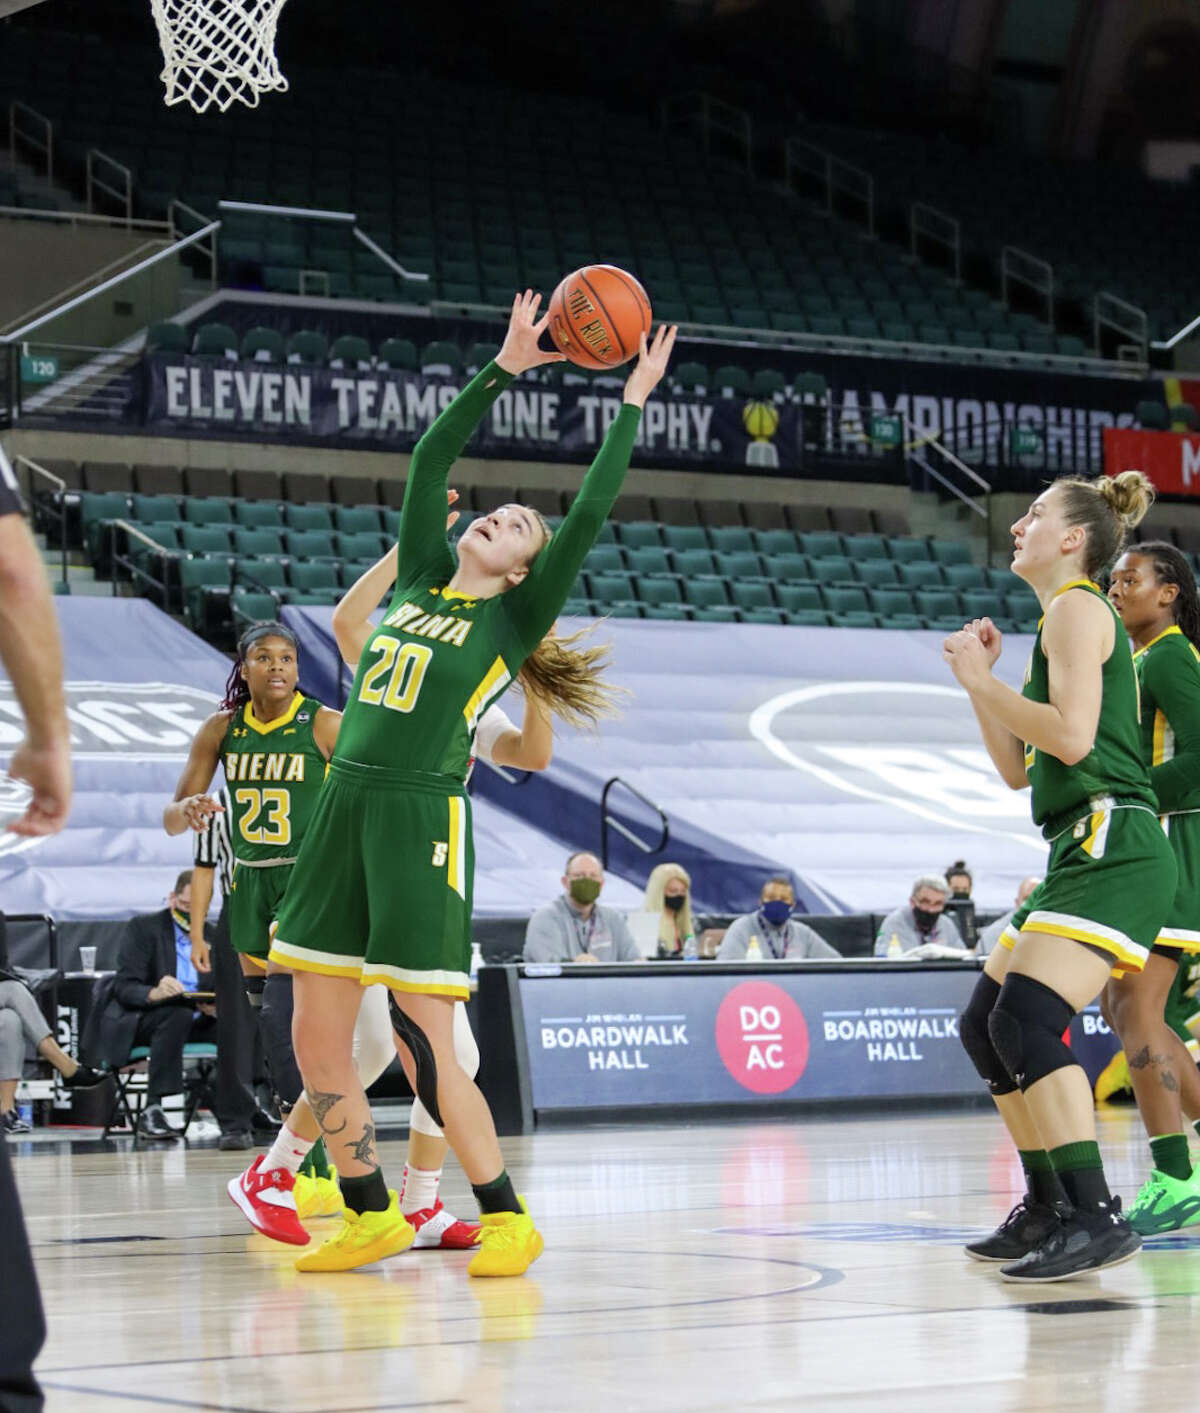 Siena's Margo Peterson grabs a rebound in their MAAC Tournament quarterfinal on Wednesday, March 10, 2021. Peterson led Siena with 13 points.